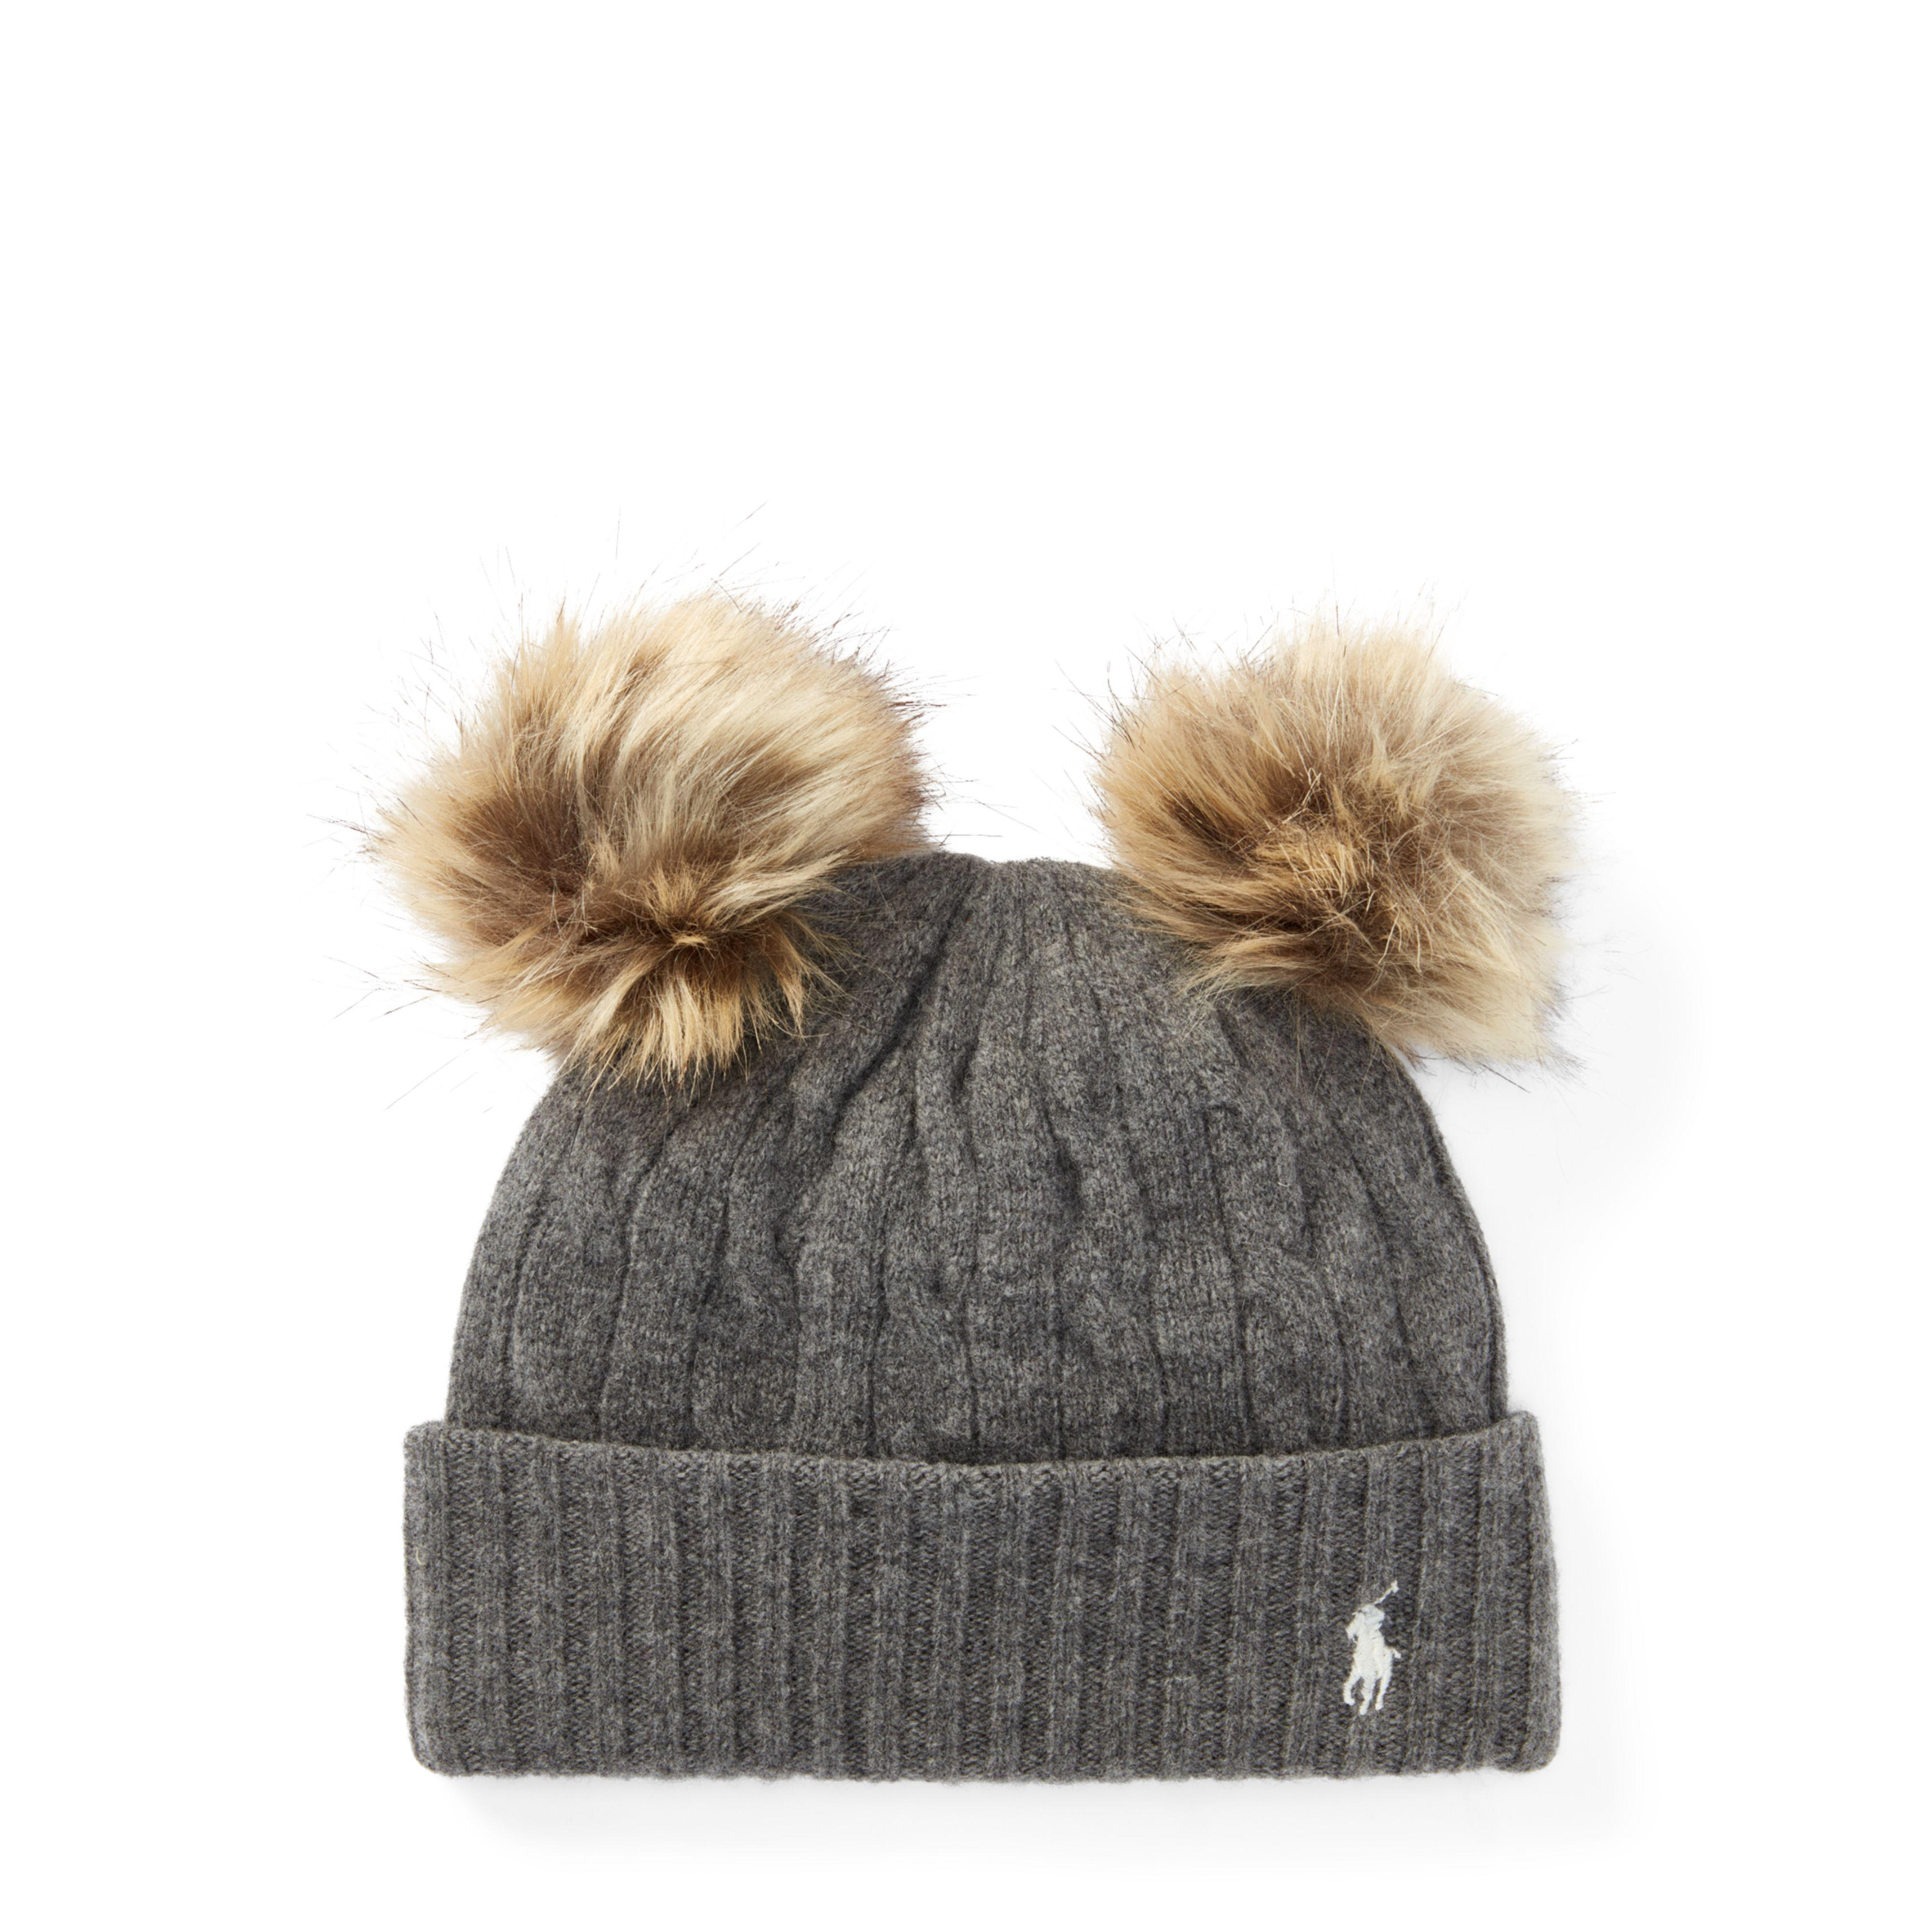 Lyst - Polo Ralph Lauren Double-pom-pom Wool Hat 570f649b84a